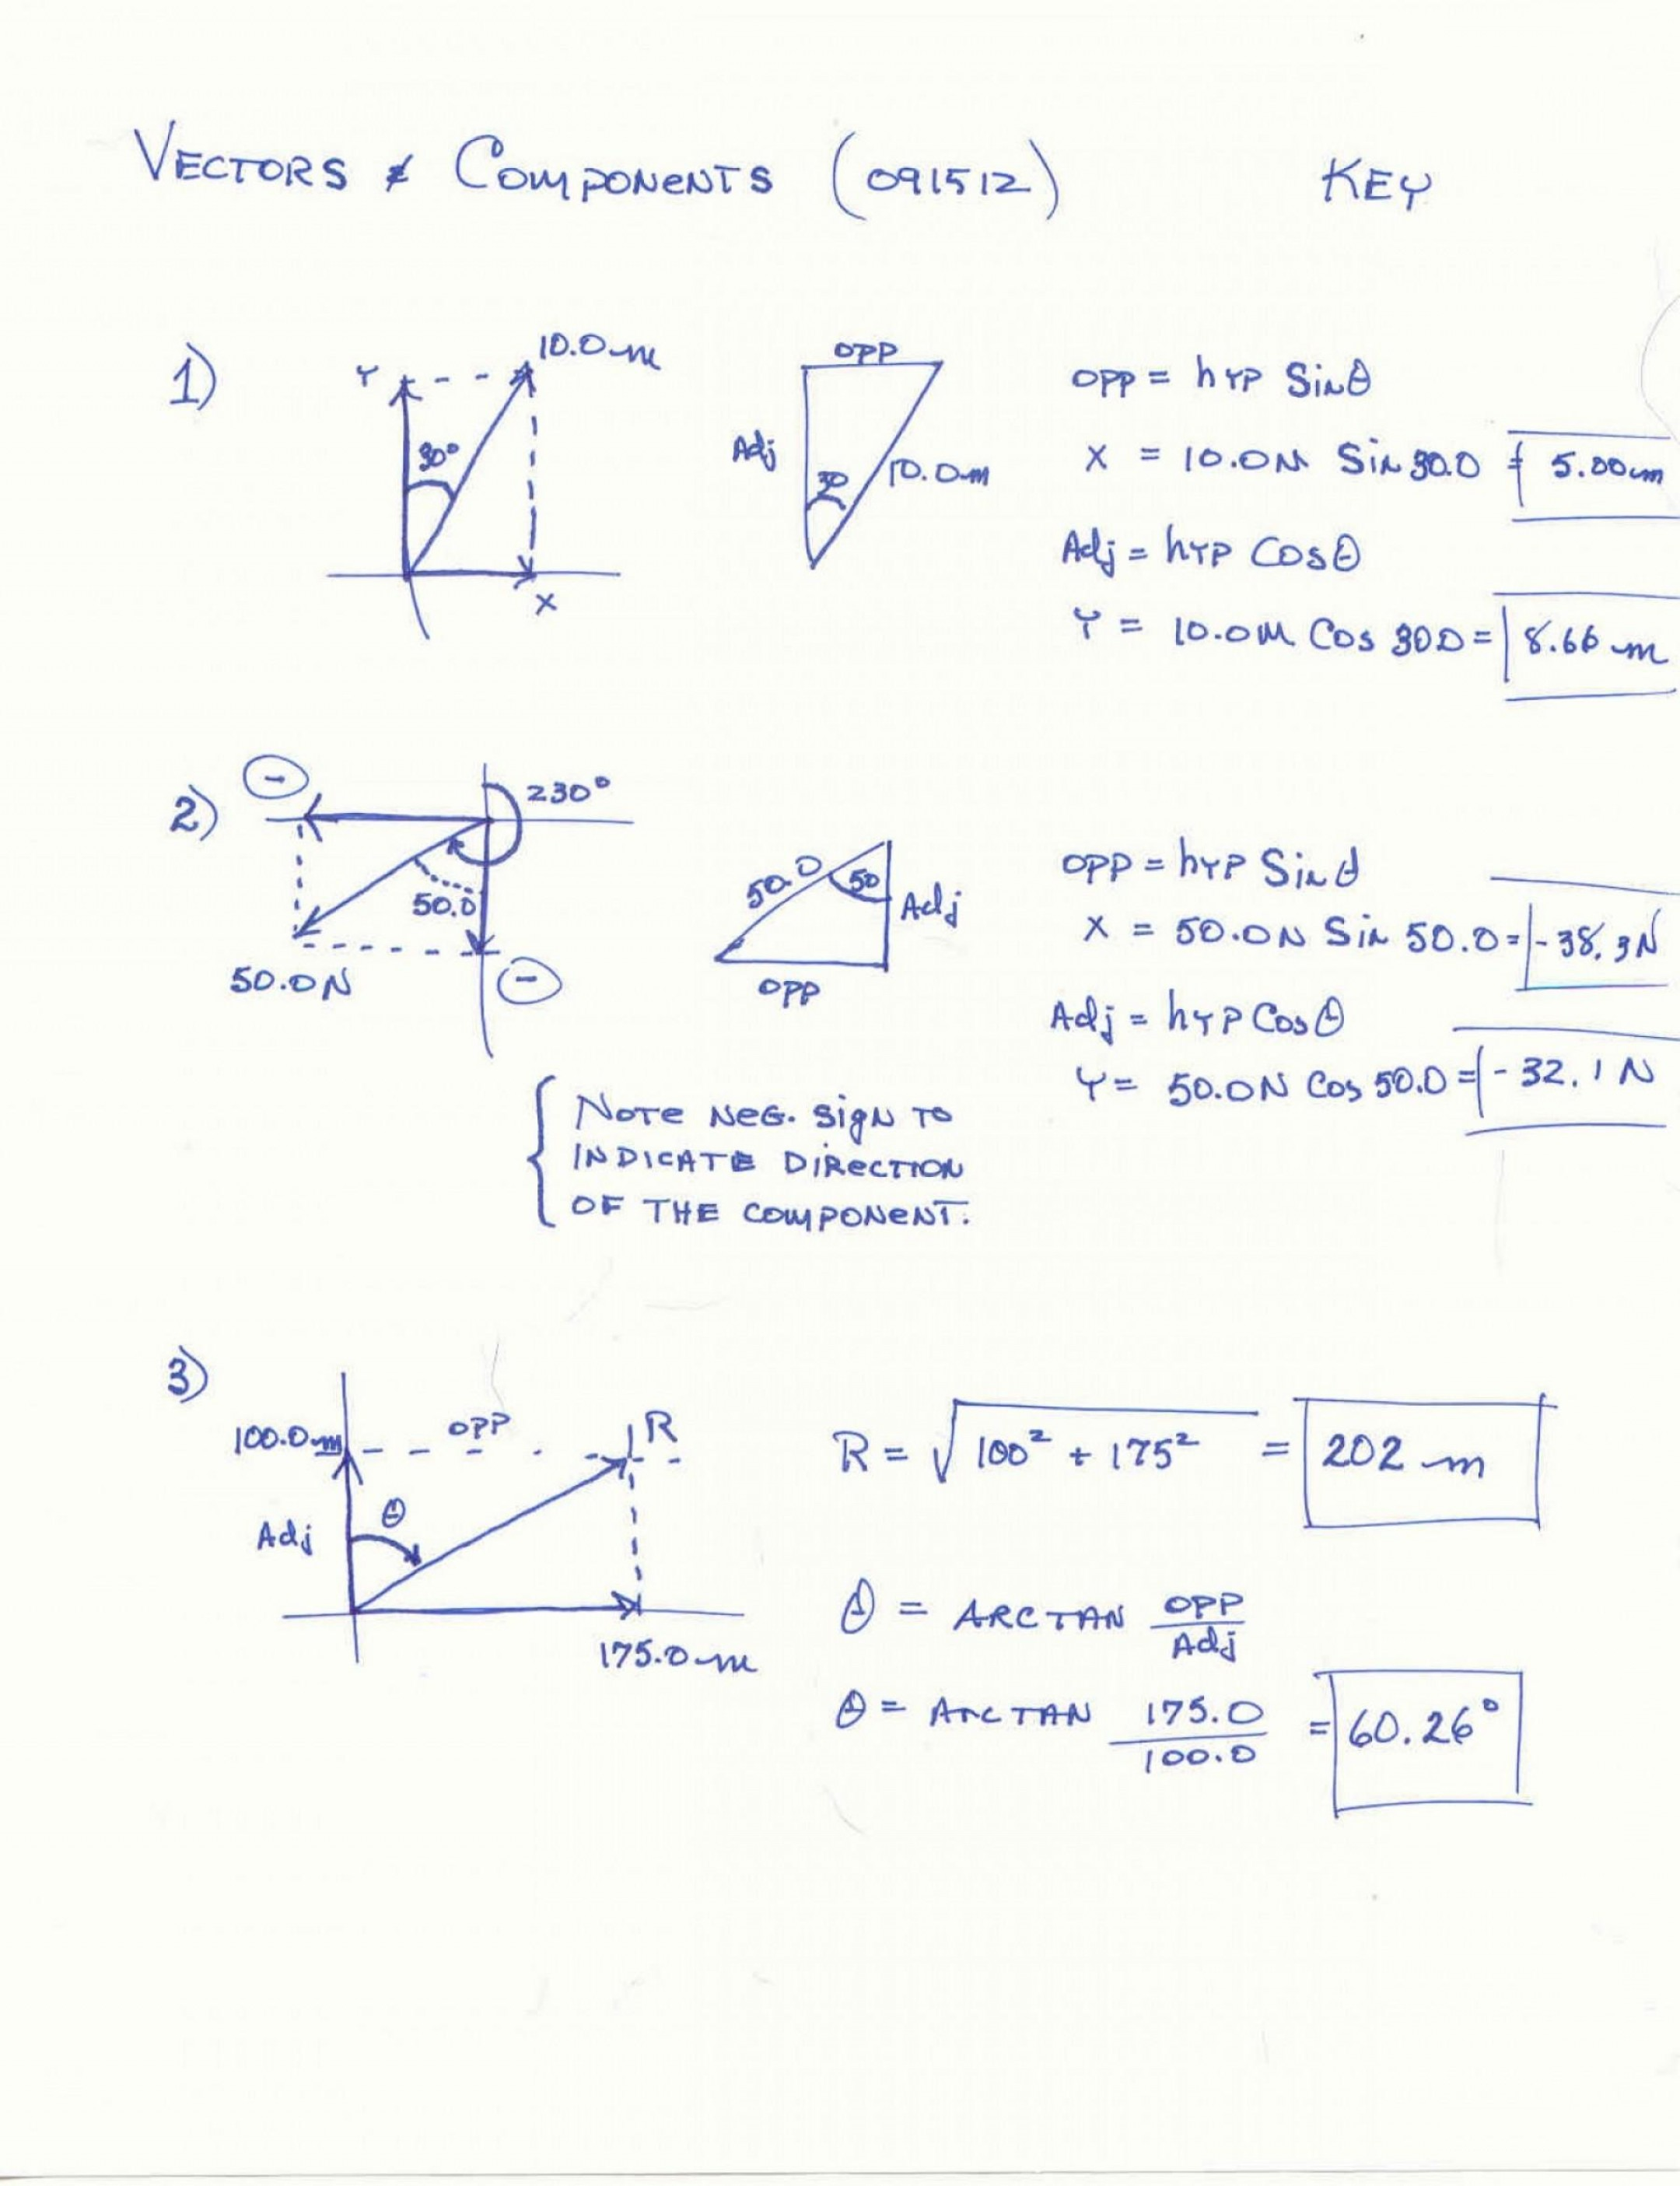 Vector Addition Worksheet Answer Key : vector, addition, worksheet, answer, Vector, Addition, Components, Worksheet, Answers, Promotiontablecovers